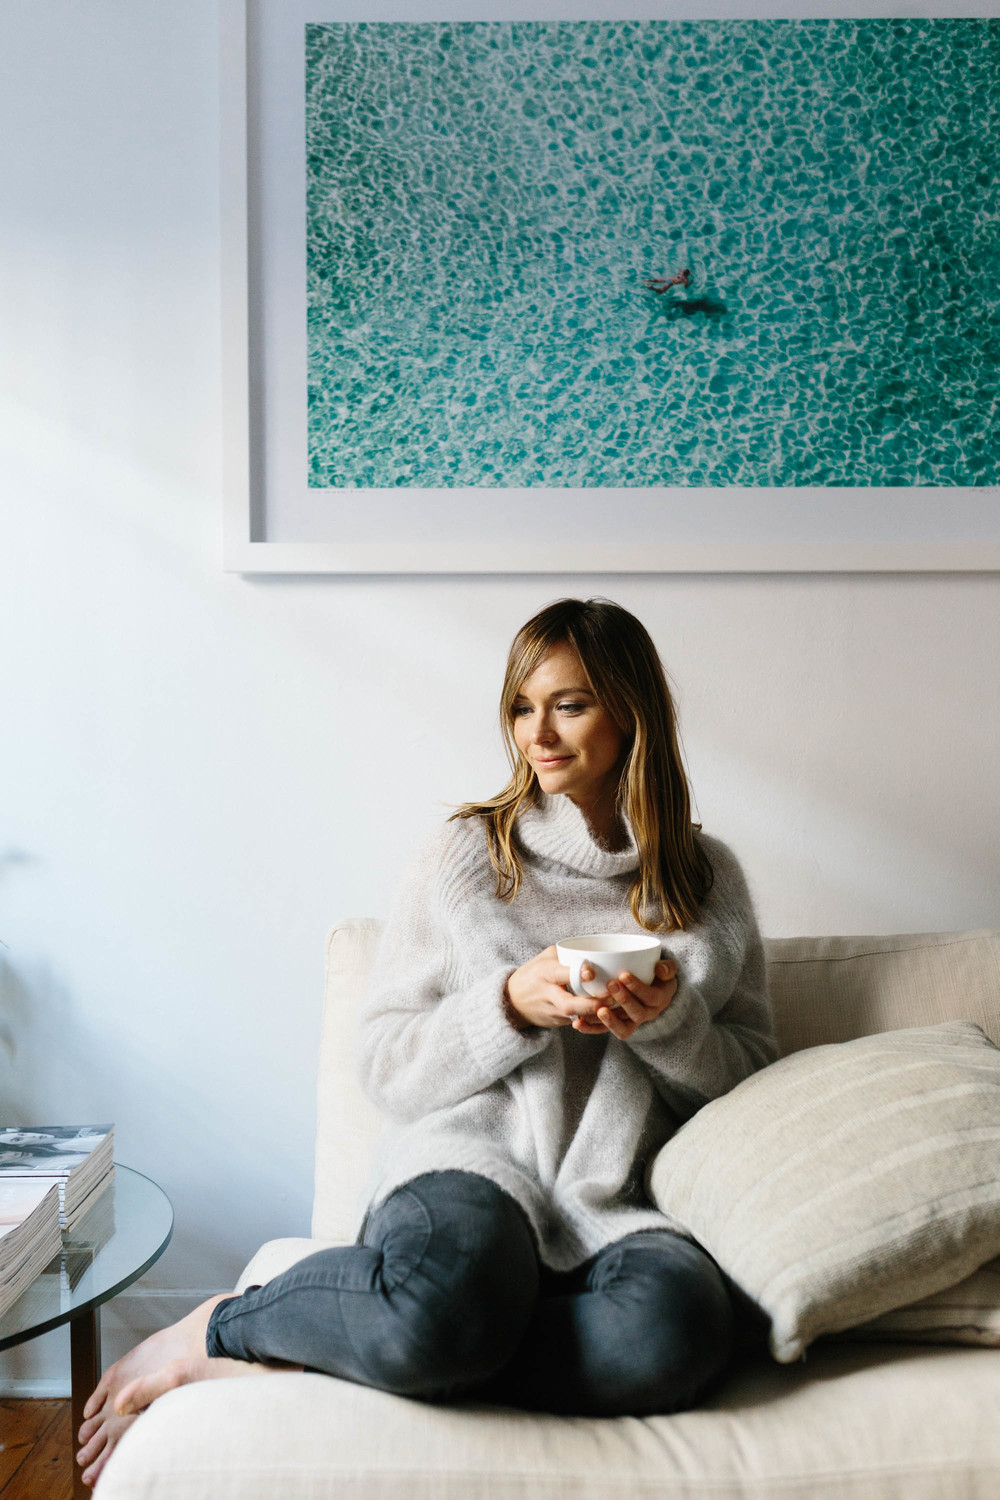 Marnie Hawson, Melbourne lifestyle photographer for The Downtime Agenda and Jacqueline Alwill